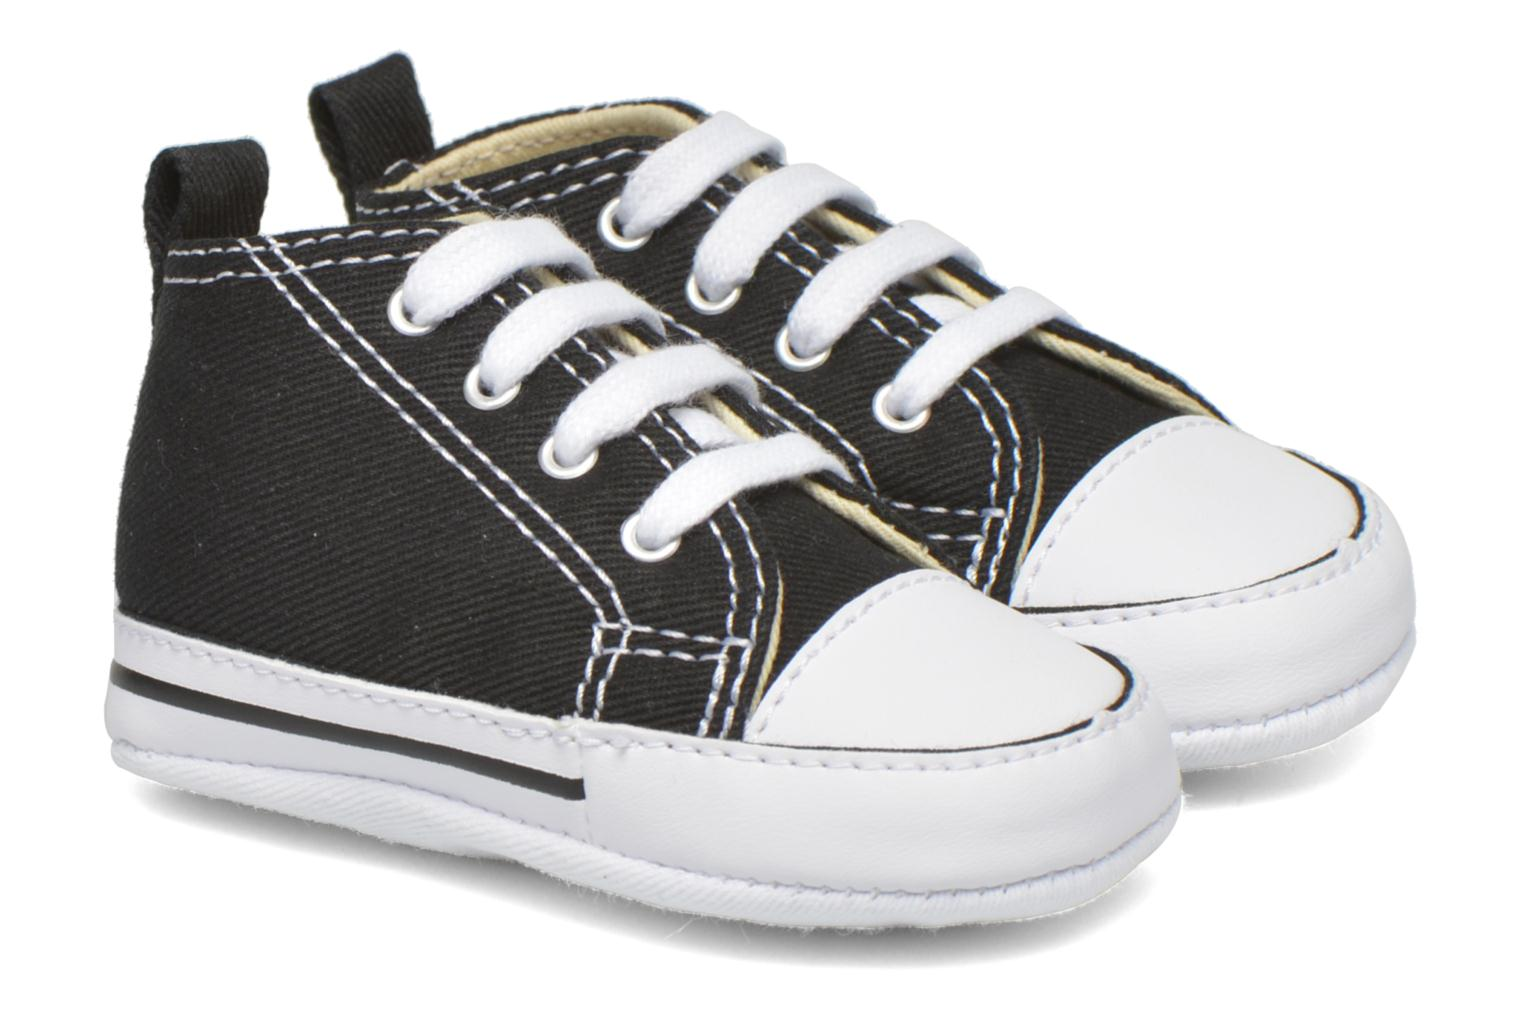 Sneakers First Star Cvs by ConverseConverseZwartPaar schoenen - Sneakers2286505438717Textiel